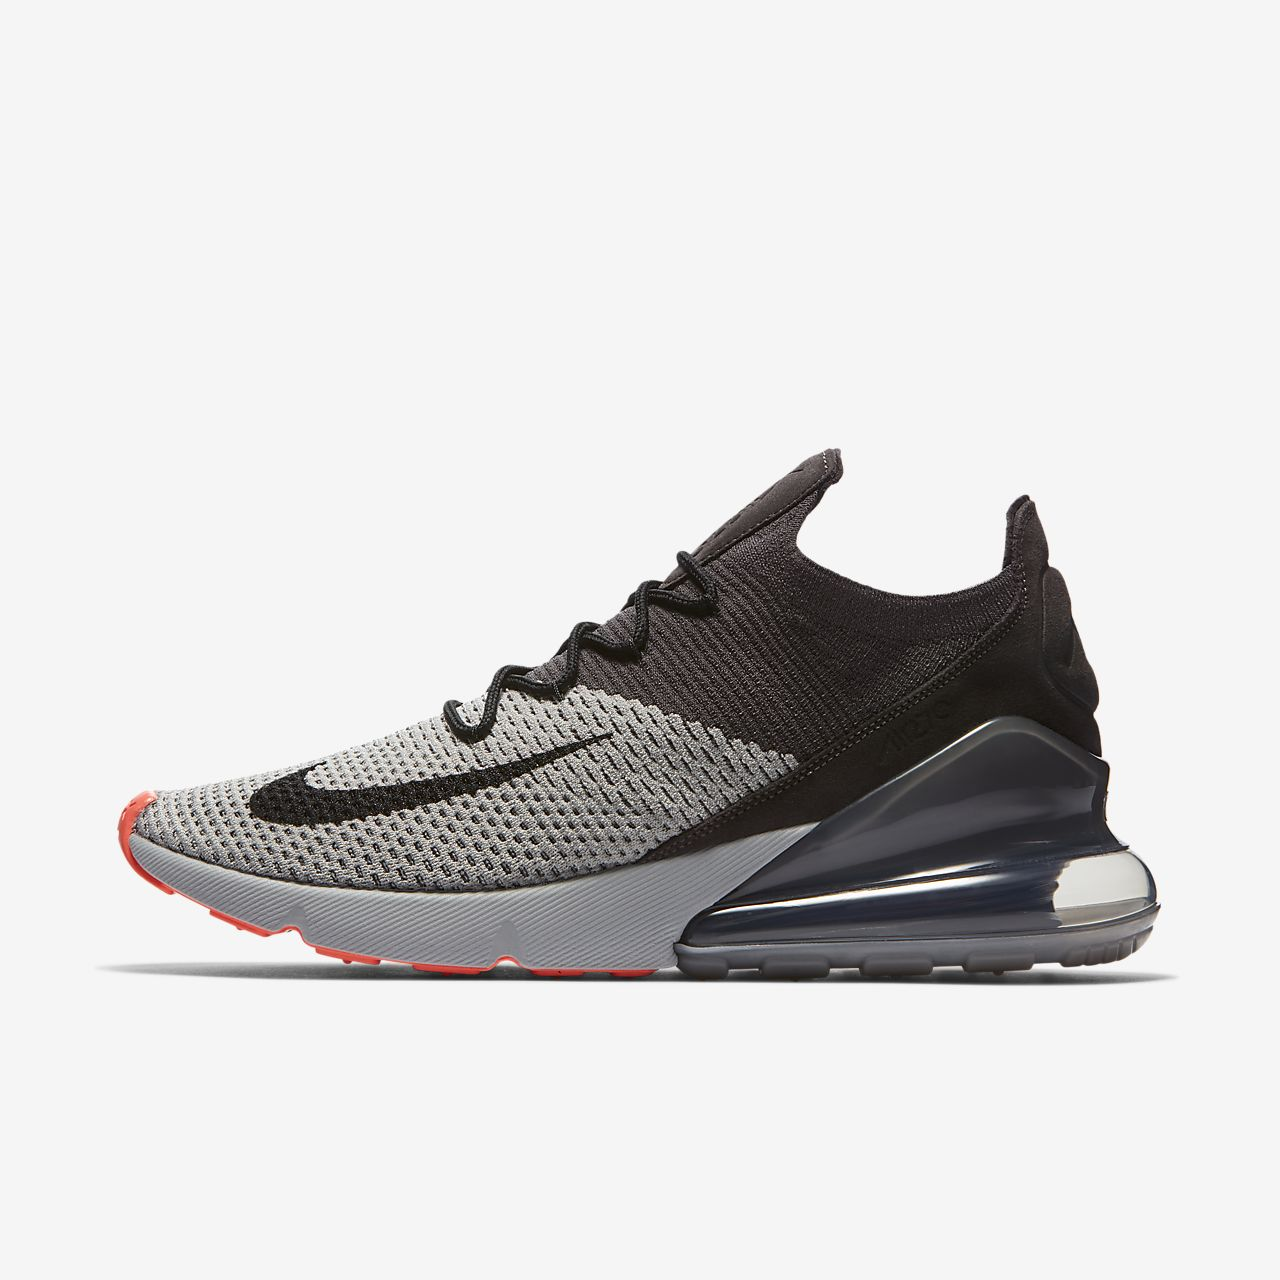 sports shoes e524f 56207 ... Nike Air Max 270 Flyknit-sko til mænd